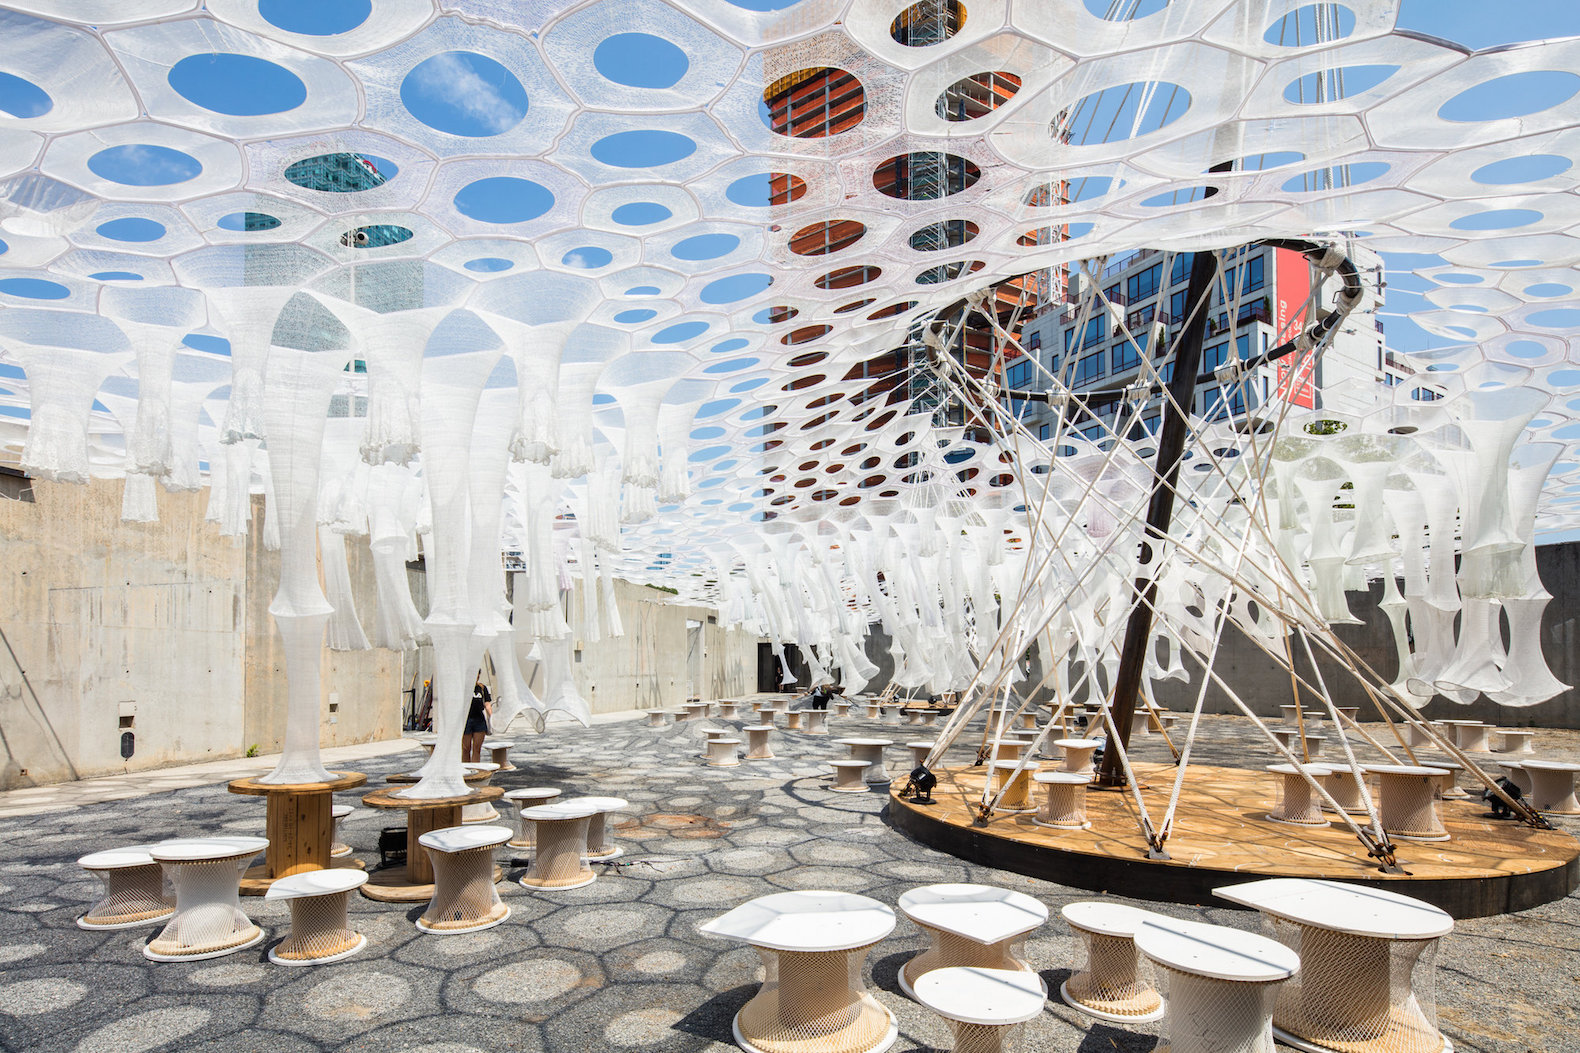 MoMA PS1 unveils futuristic solar canopy that reacts to heat, sunlight, and movement